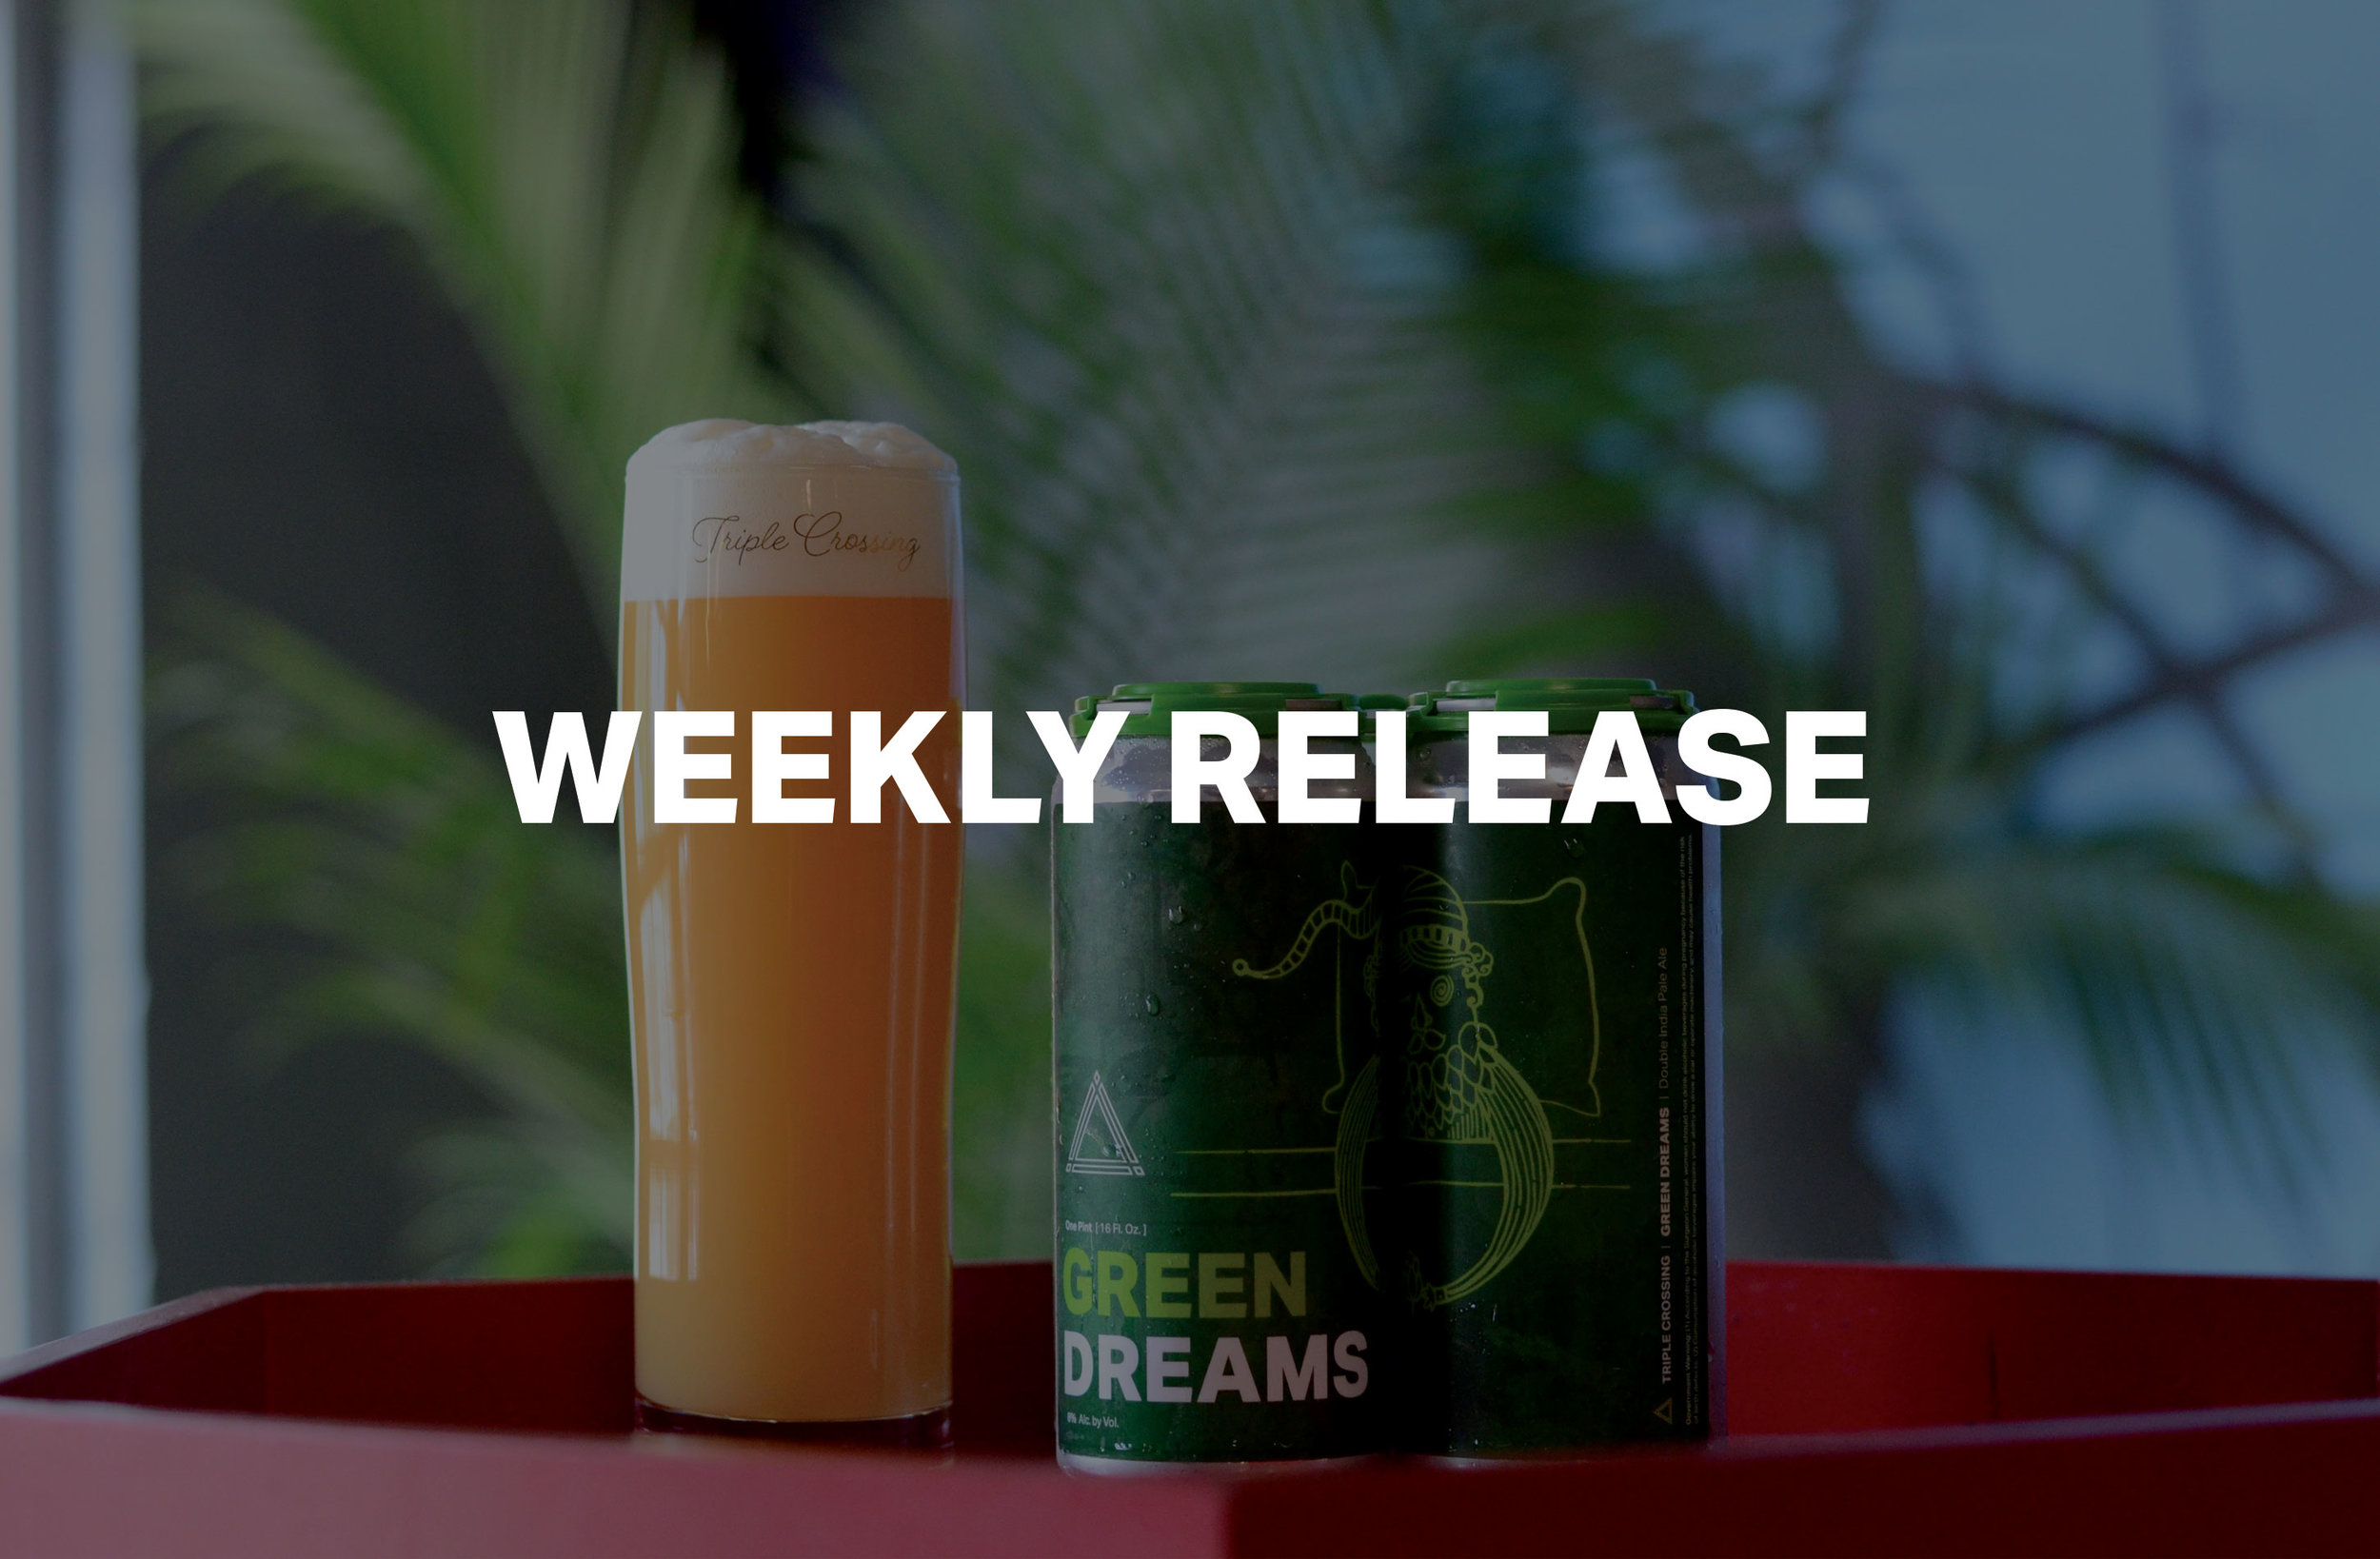 THIS WEEKS RELEASE